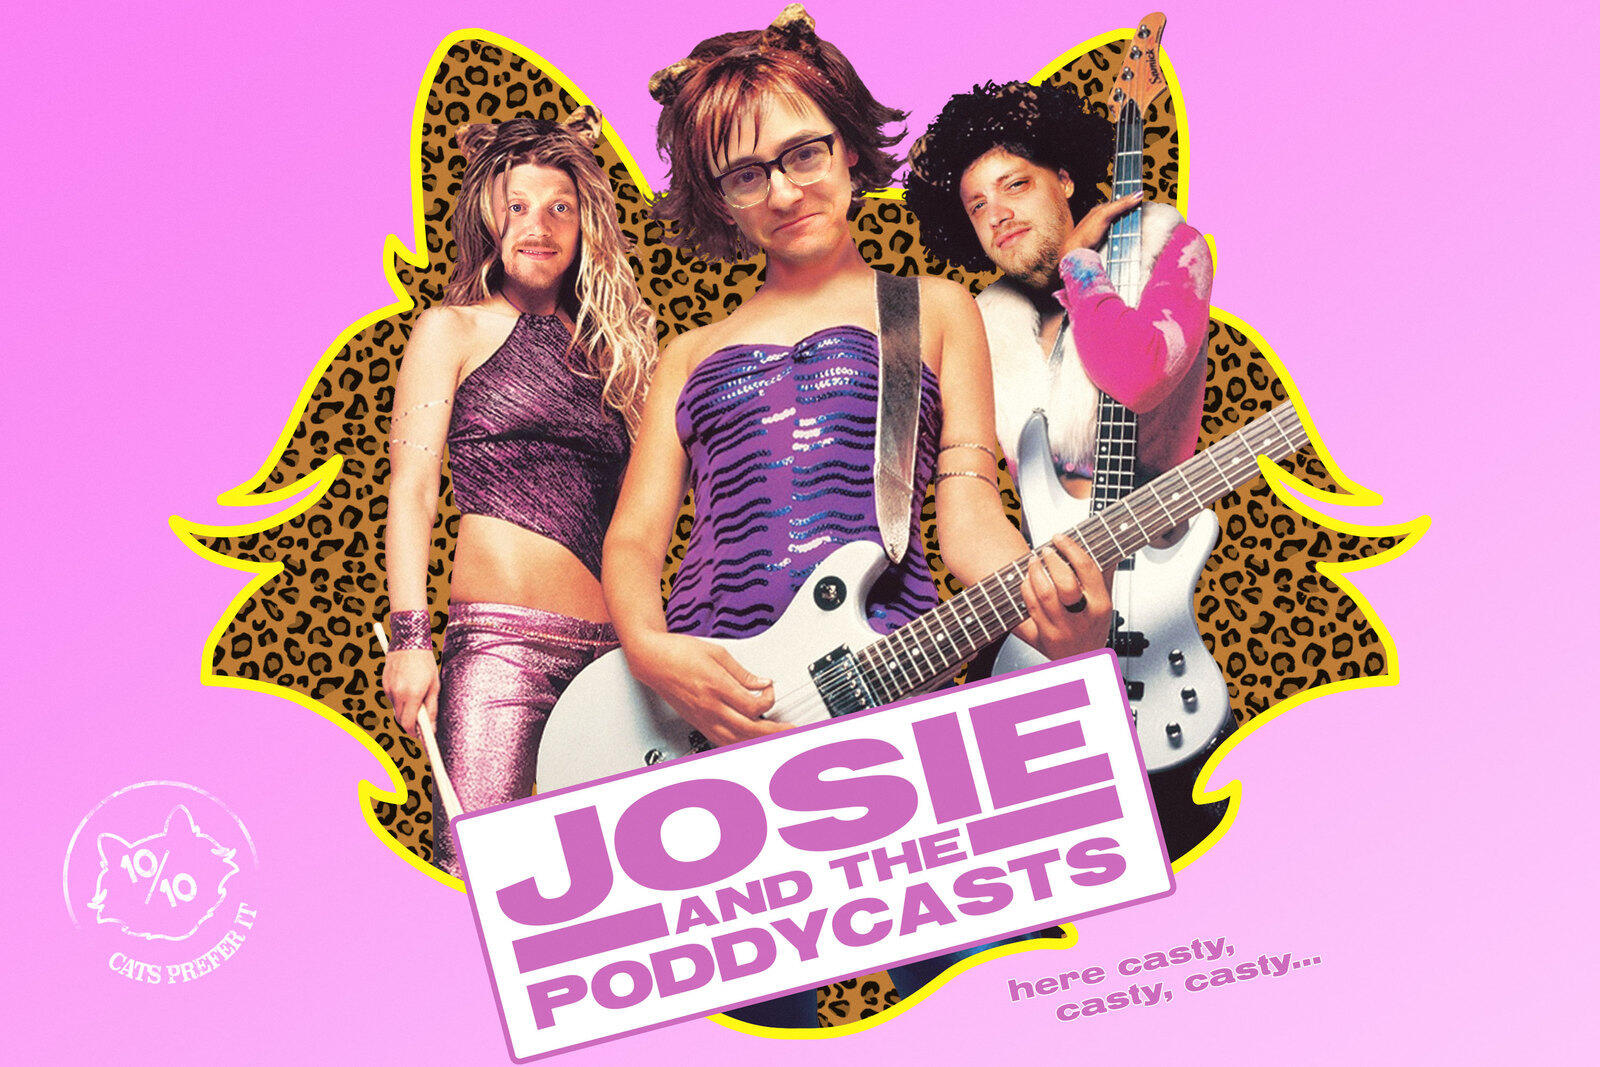 Josie and the Pussycats with Angela Ferraguto